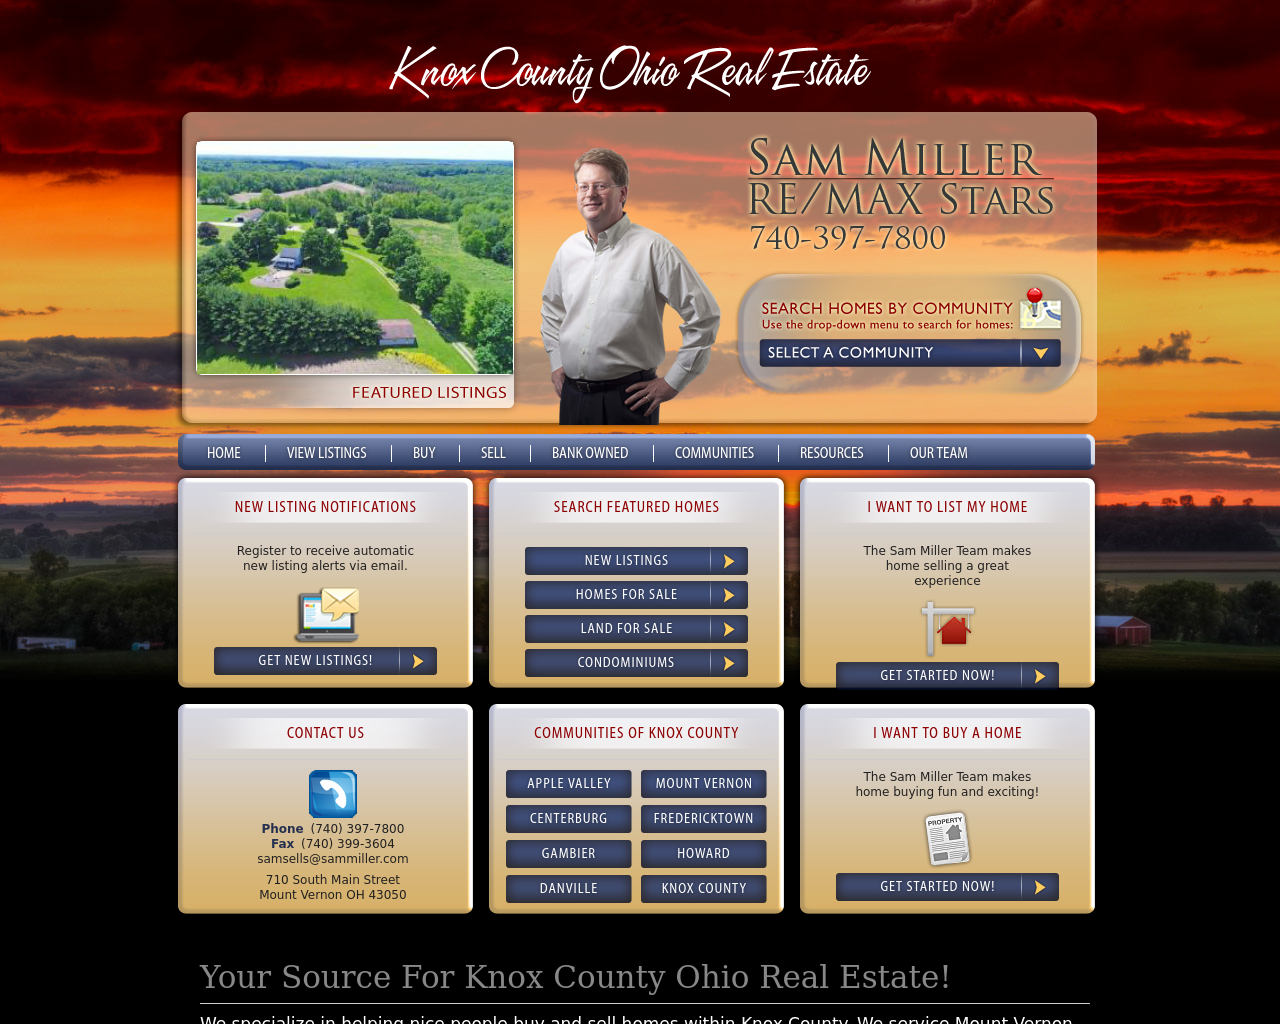 Knox-County-Ohio-Real-Estate-/-Sam-Miller-RE/MAX-Stars-Advertising-Reviews-Pricing